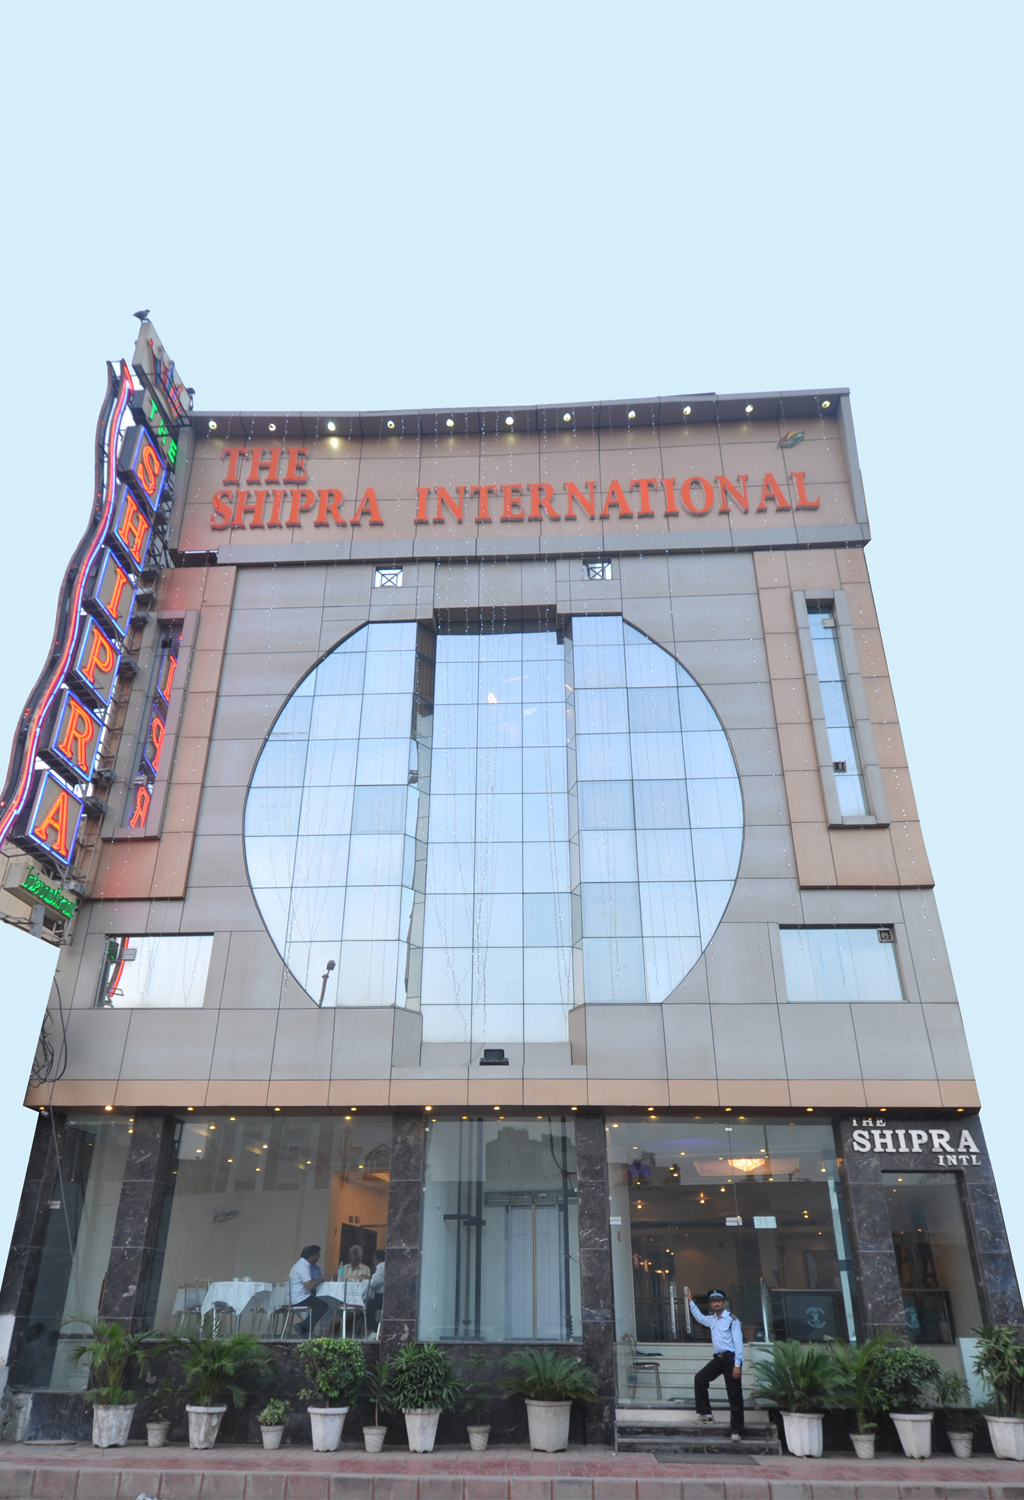 The Shipra International Hotel Delhi